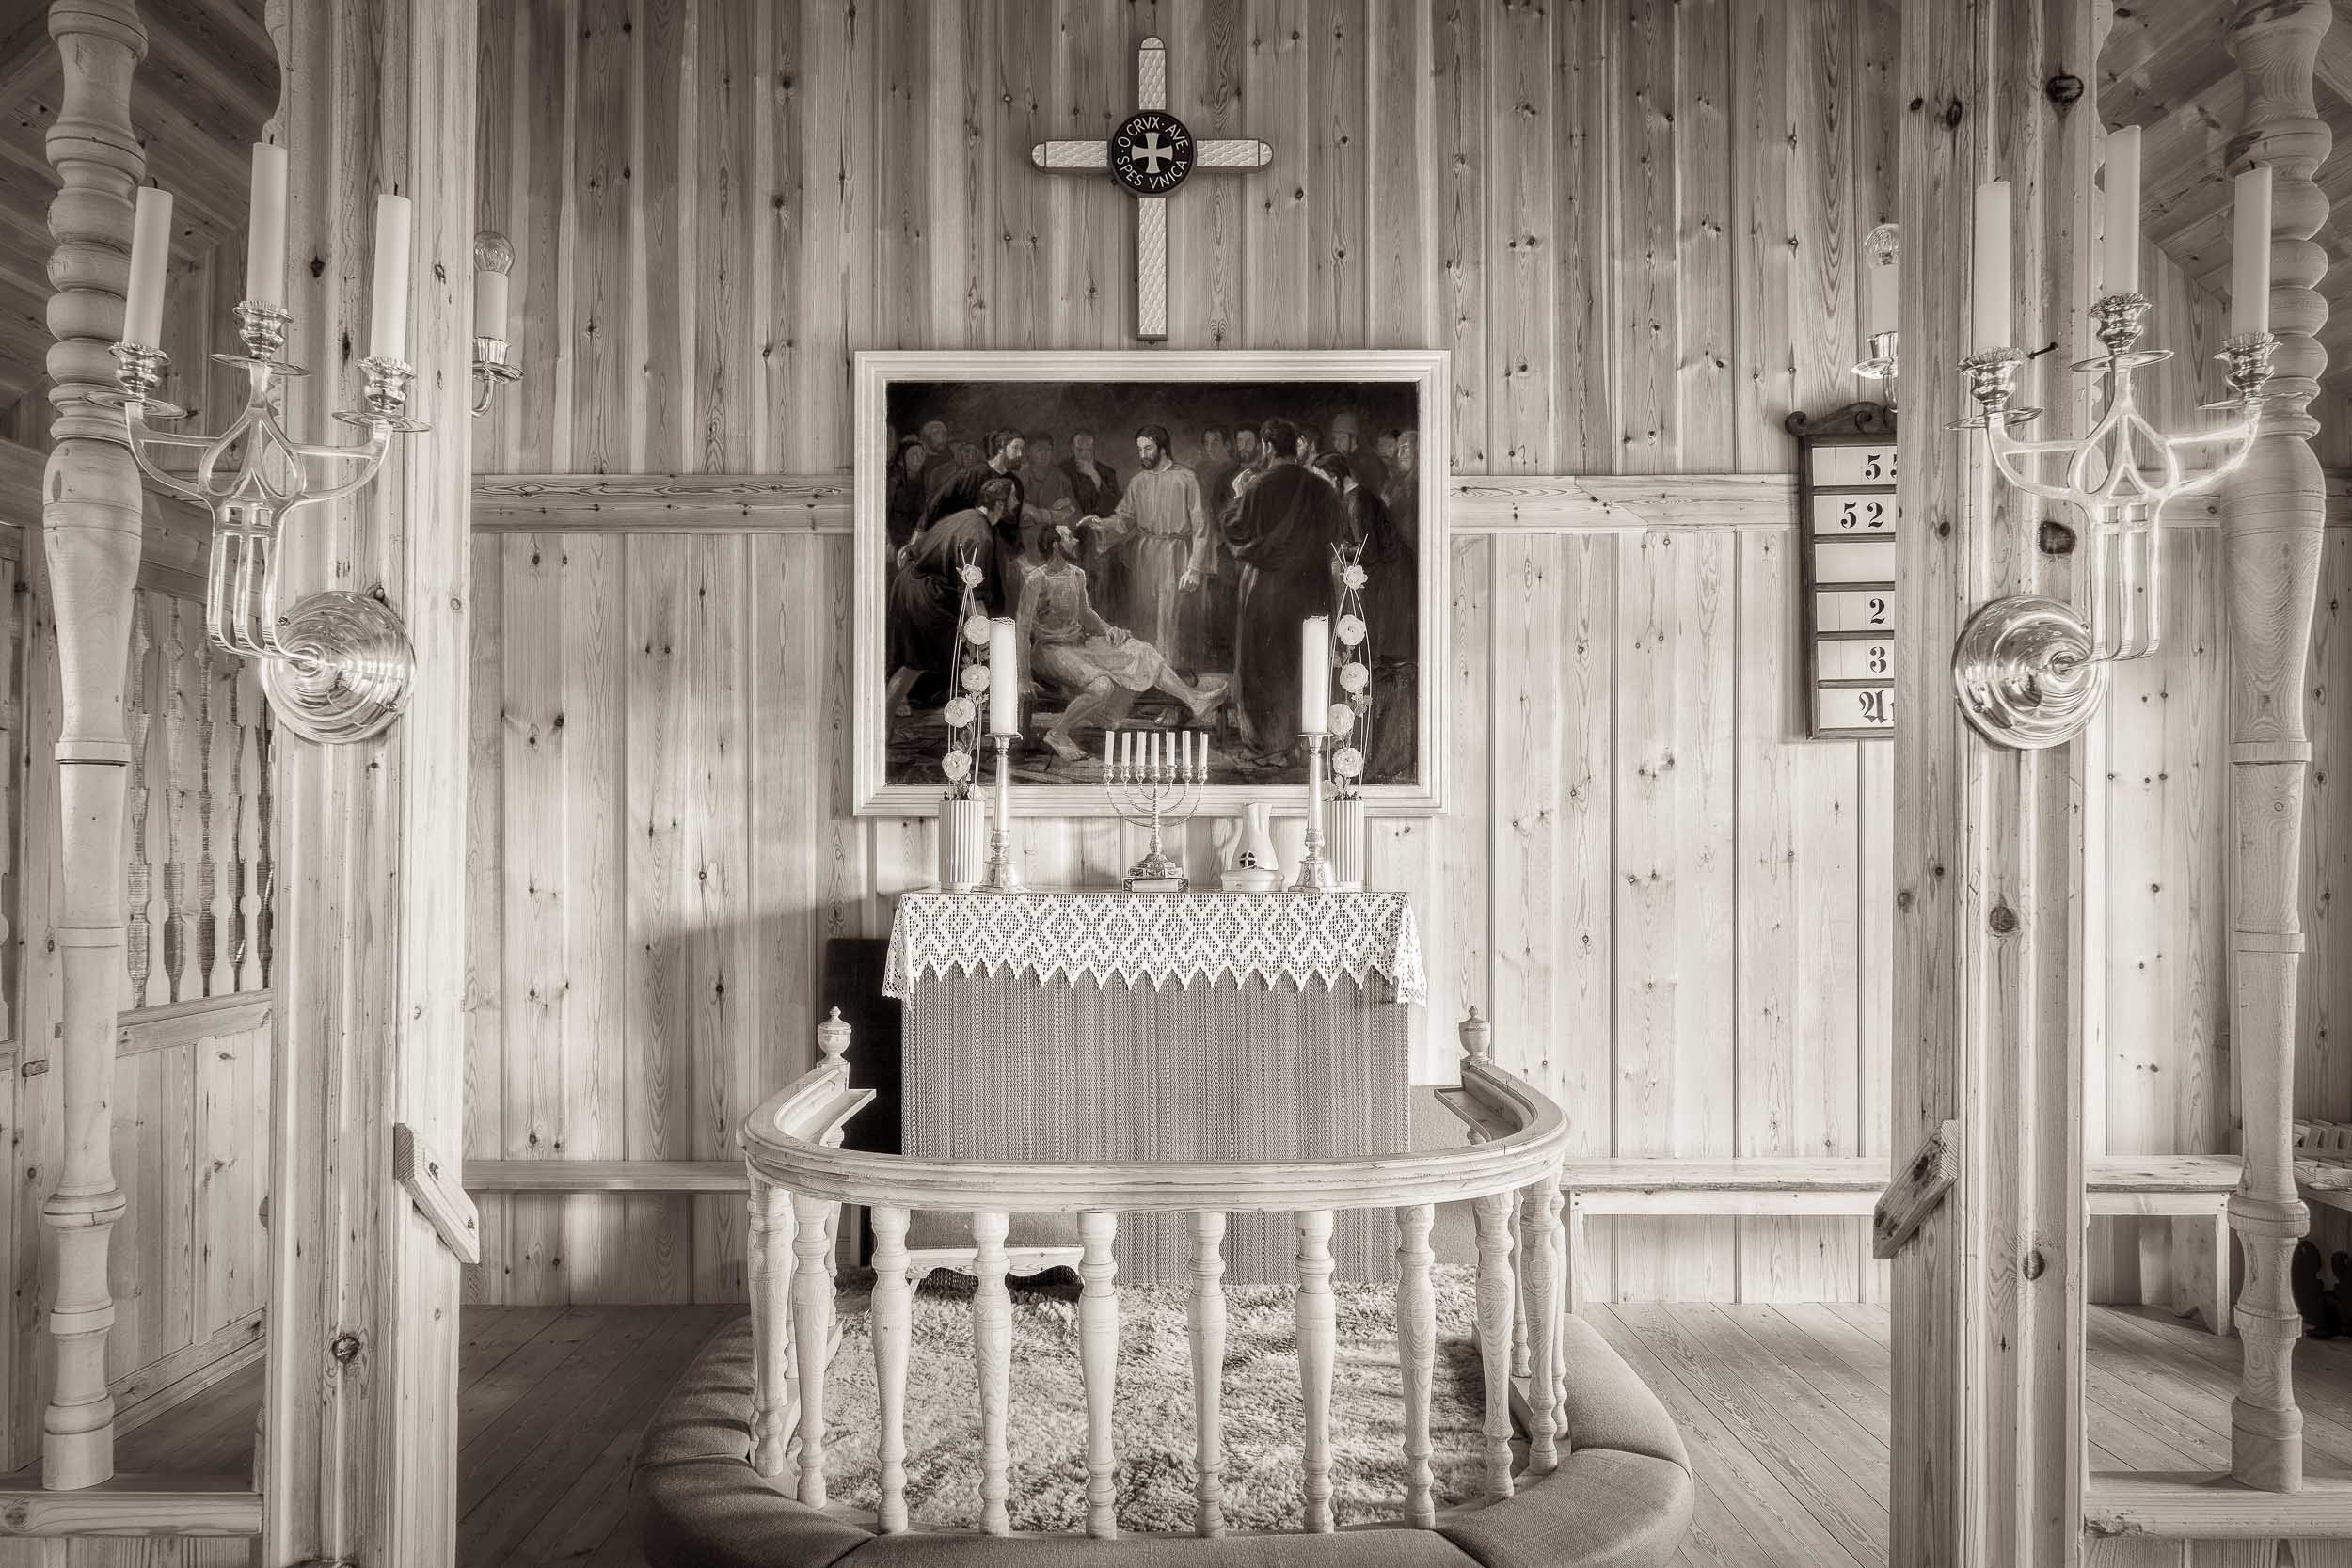 The wooden interior of the    Church Of Sandur    on the island of    Sandoy    in the    Faroe Islands   .